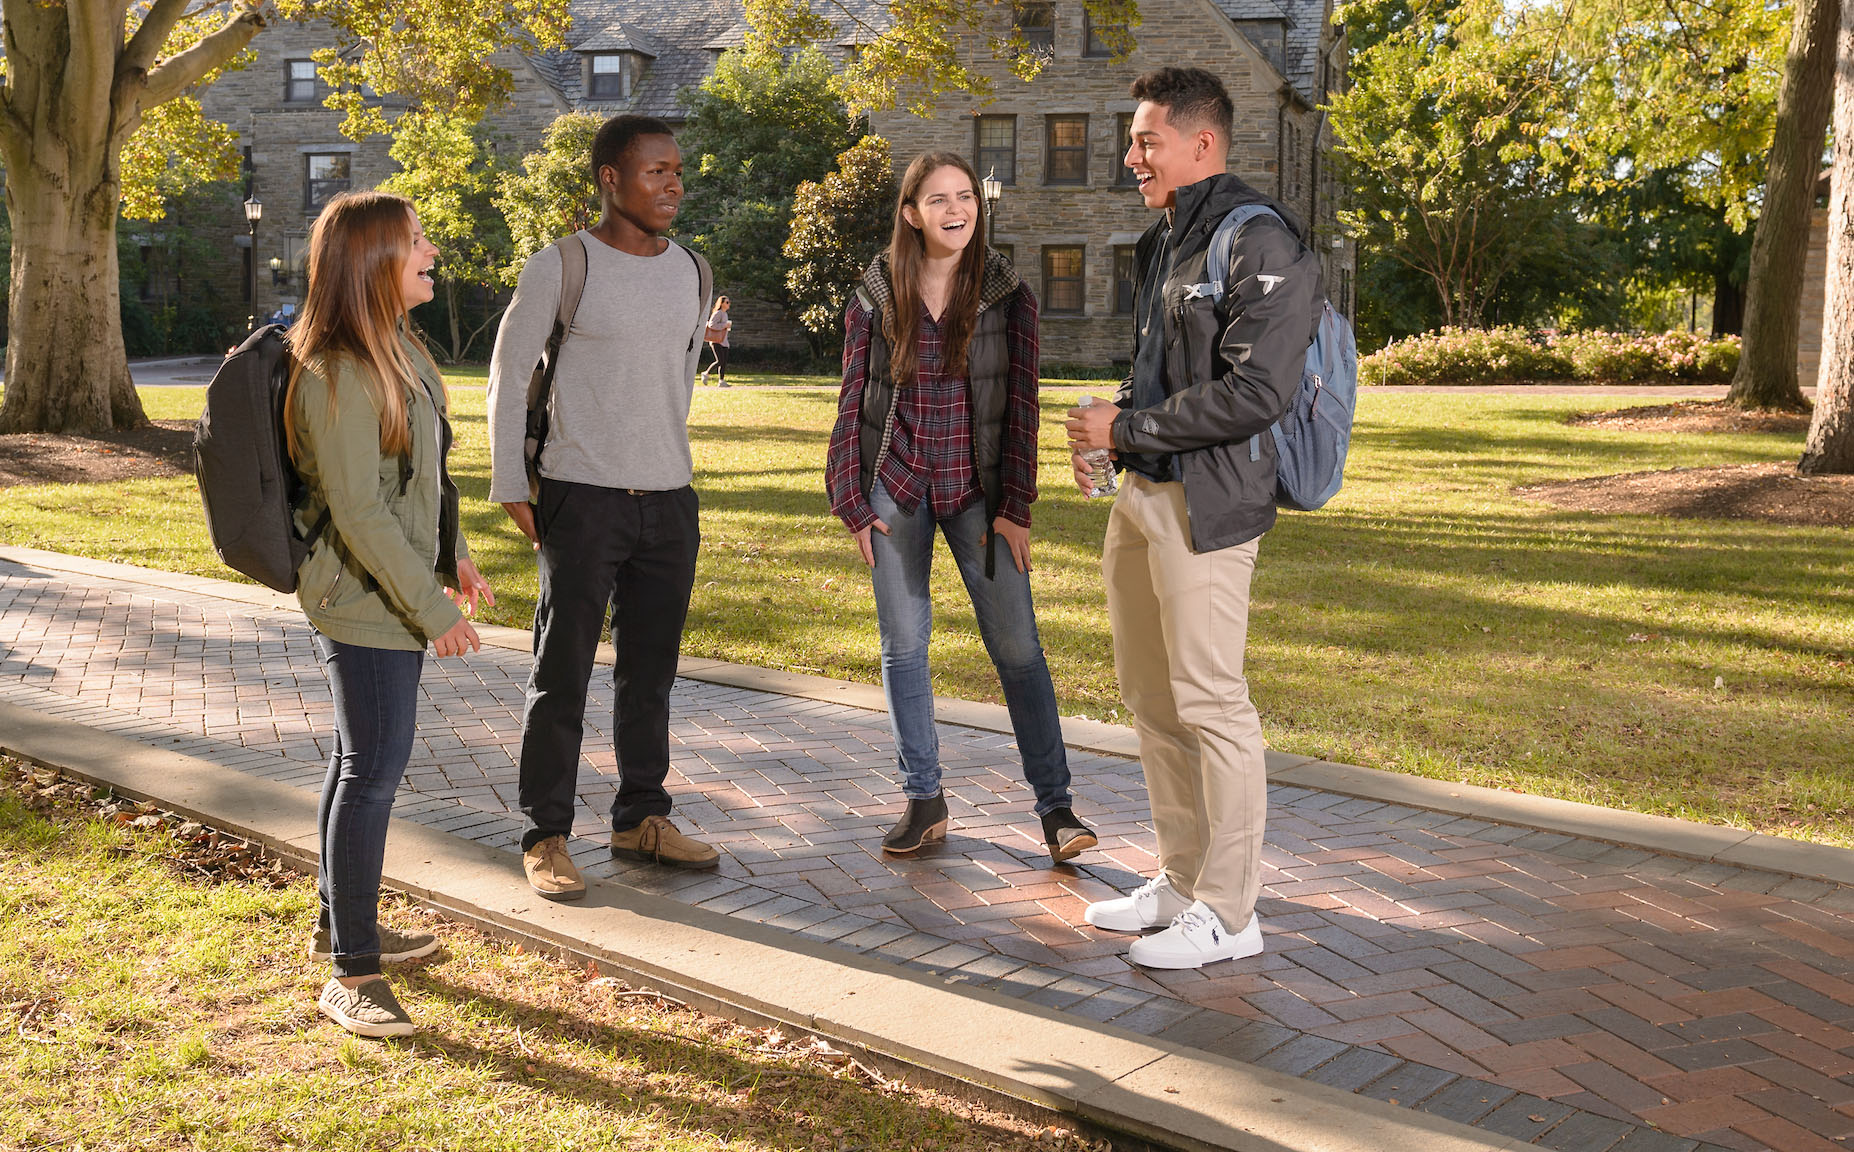 Students laughing near Austin Hall